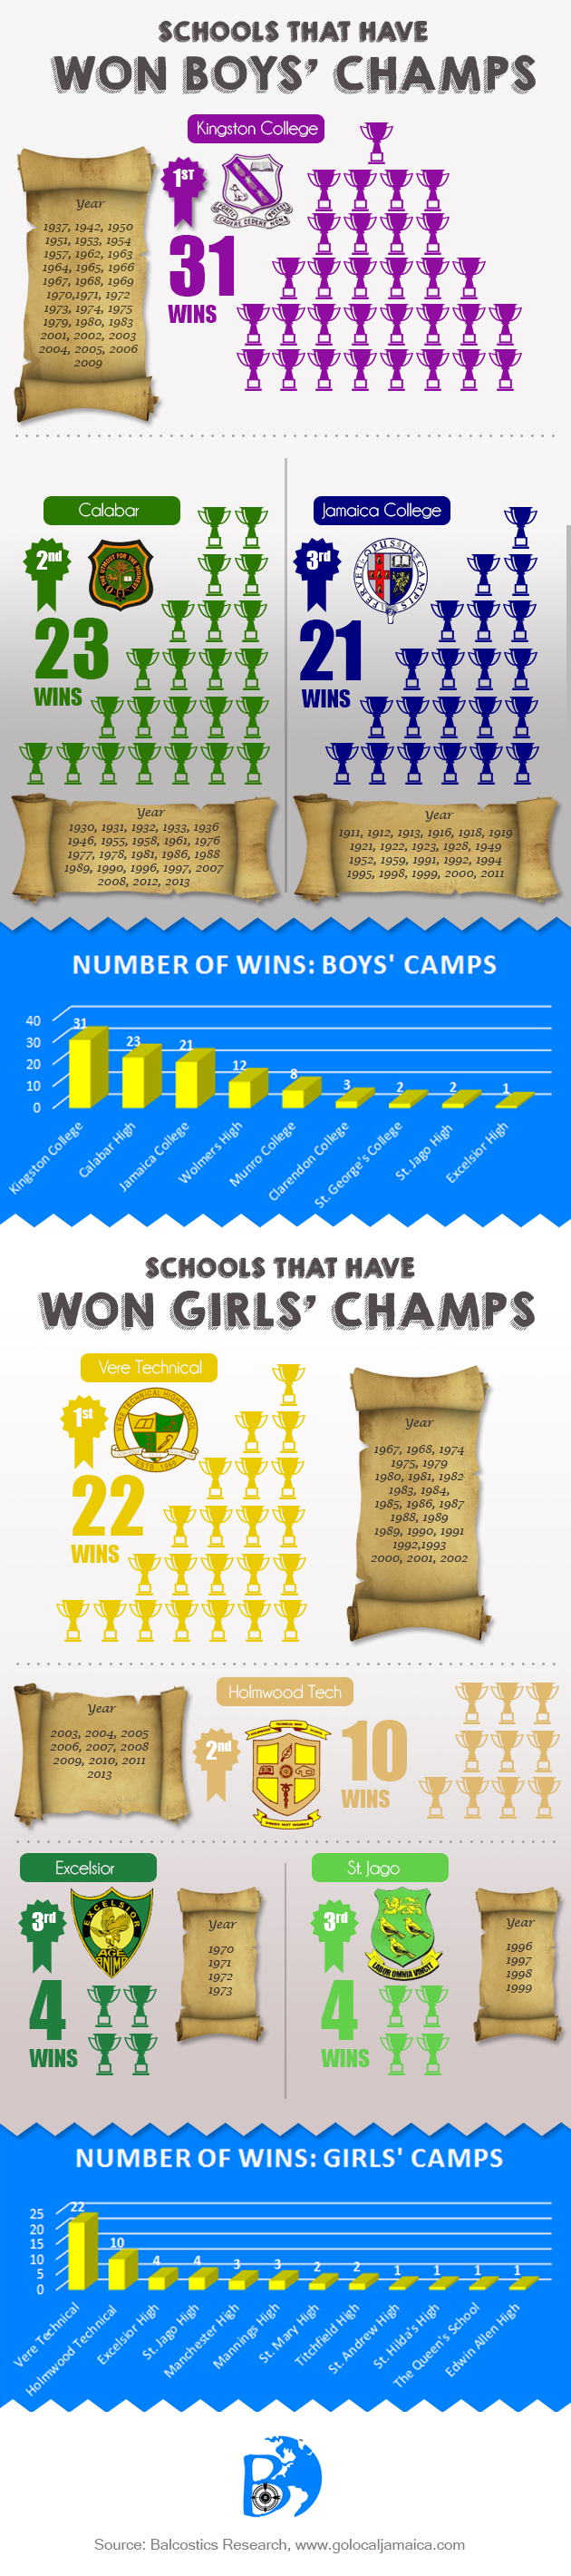 Boys and Girls Championship Infographic